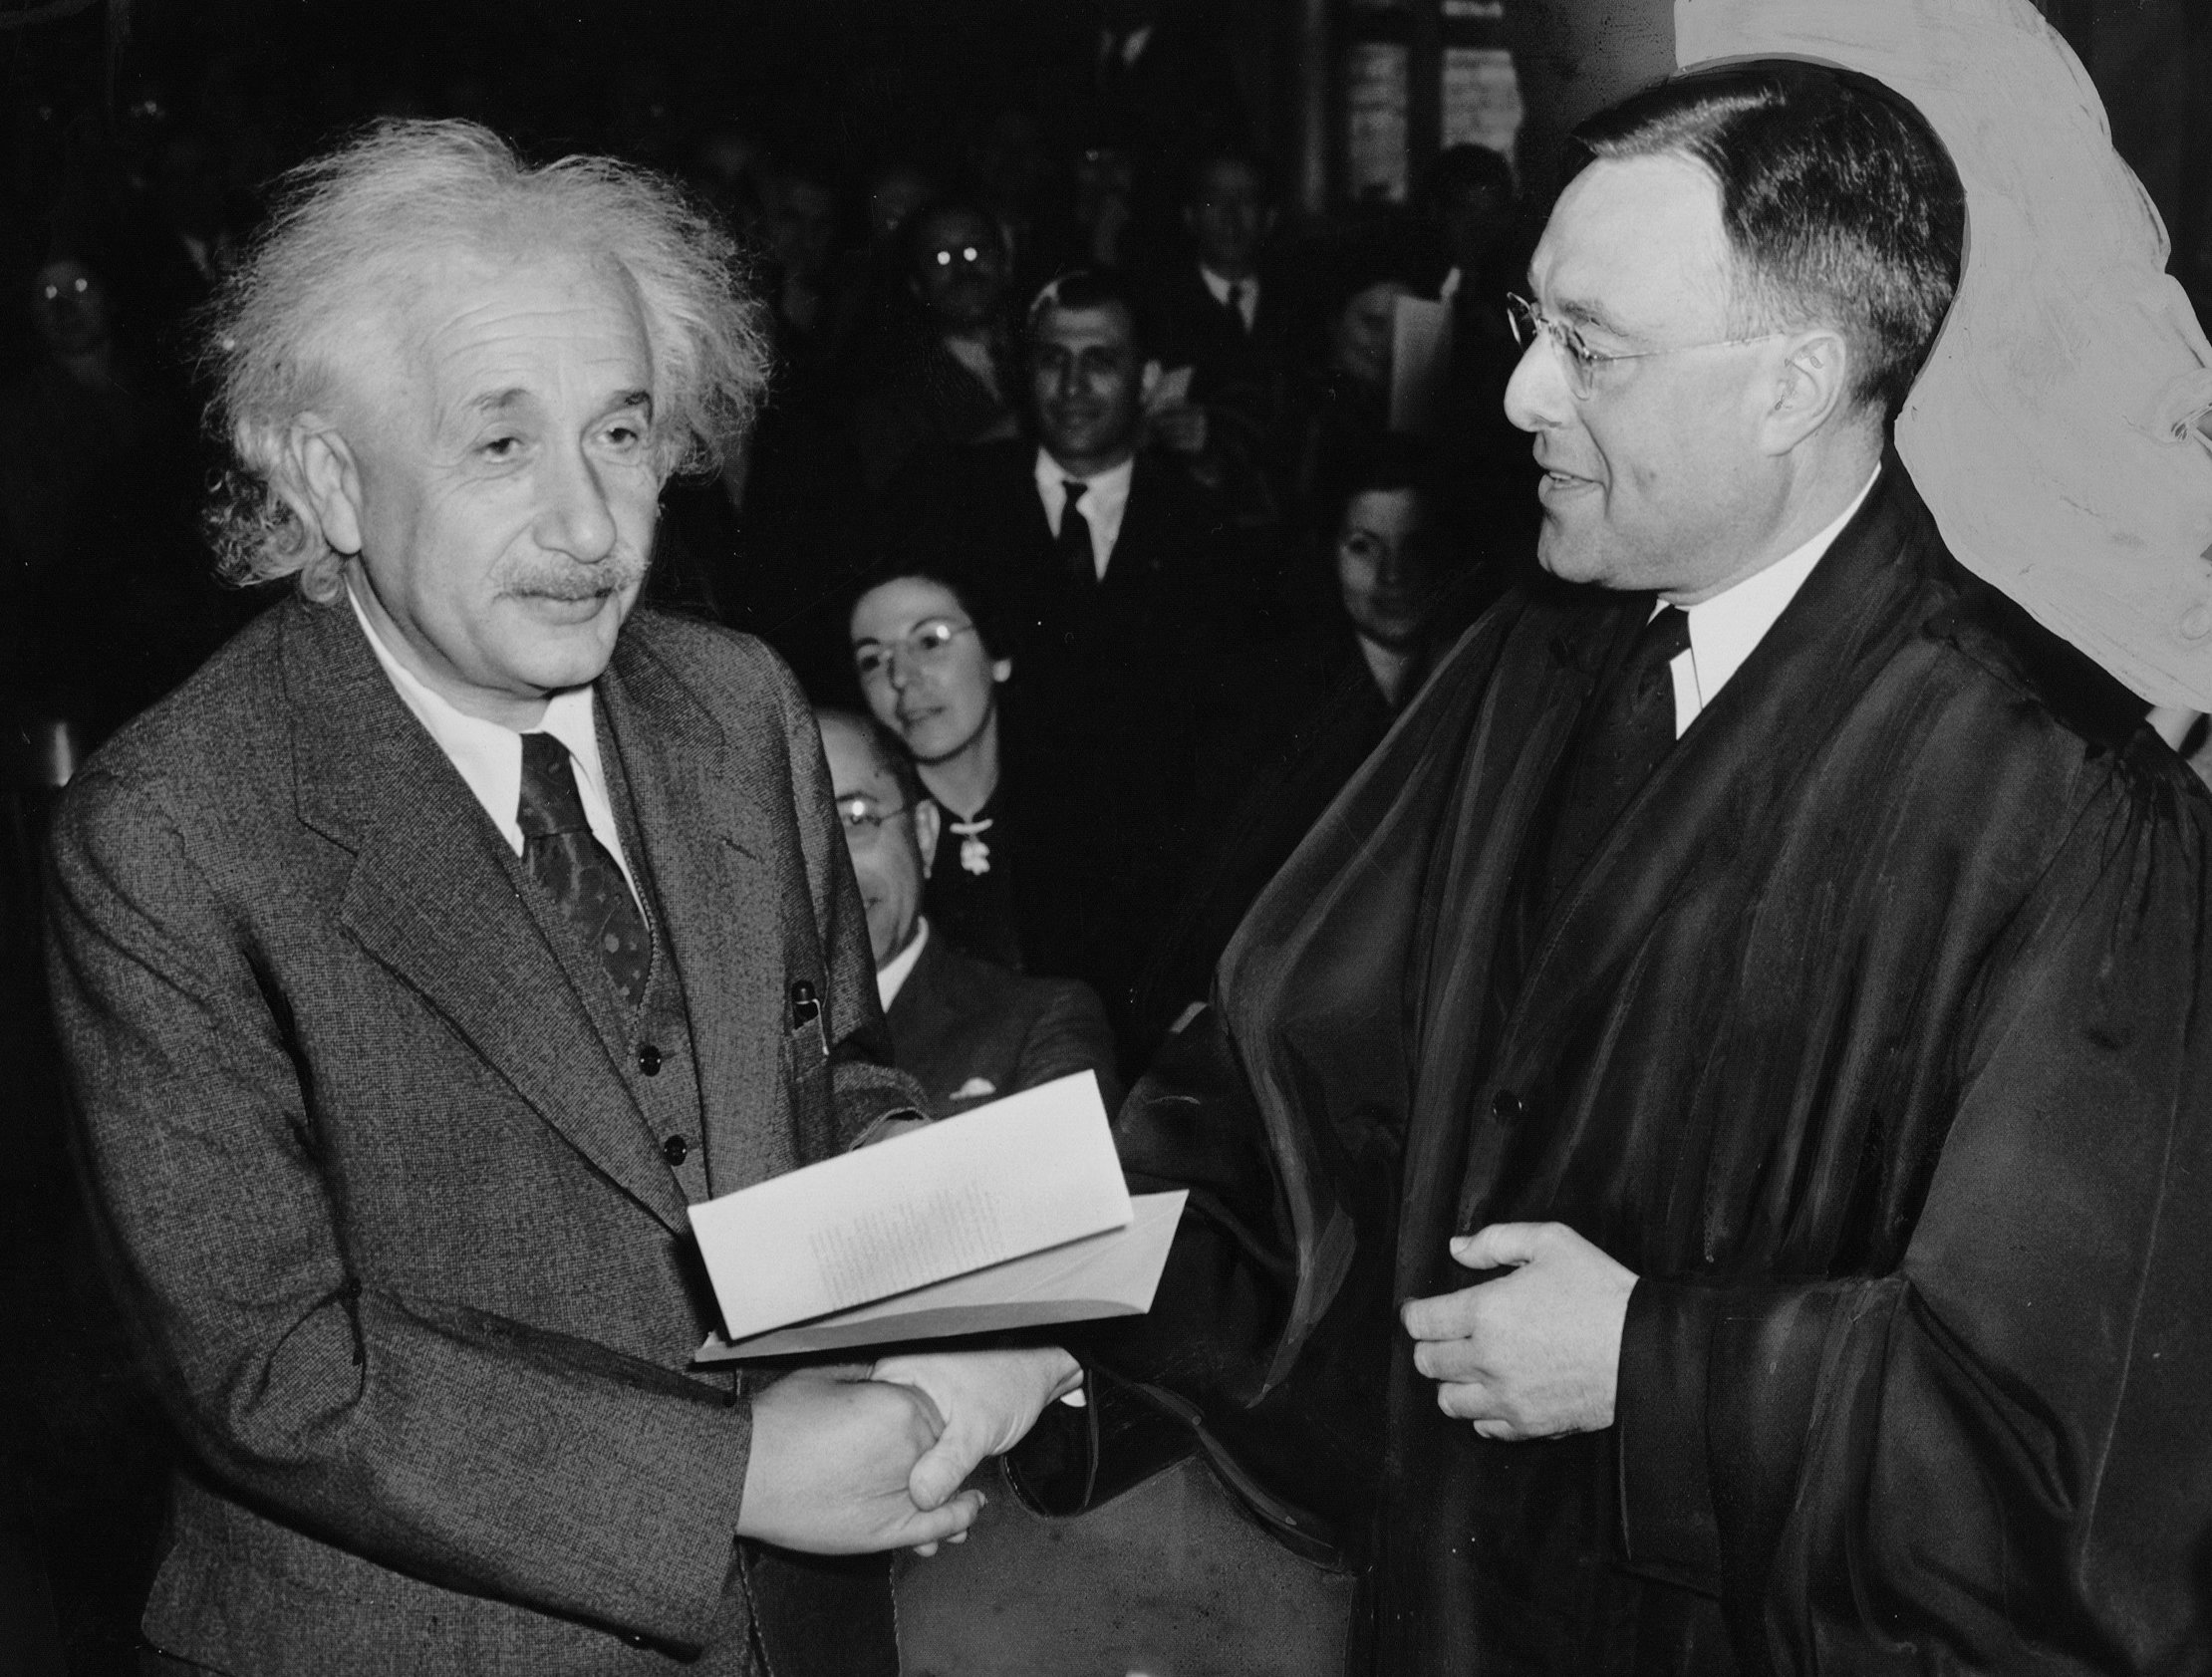 albert einstein  english receiving from judge his certificate of american citizenship deutsch erhaumllt von richter